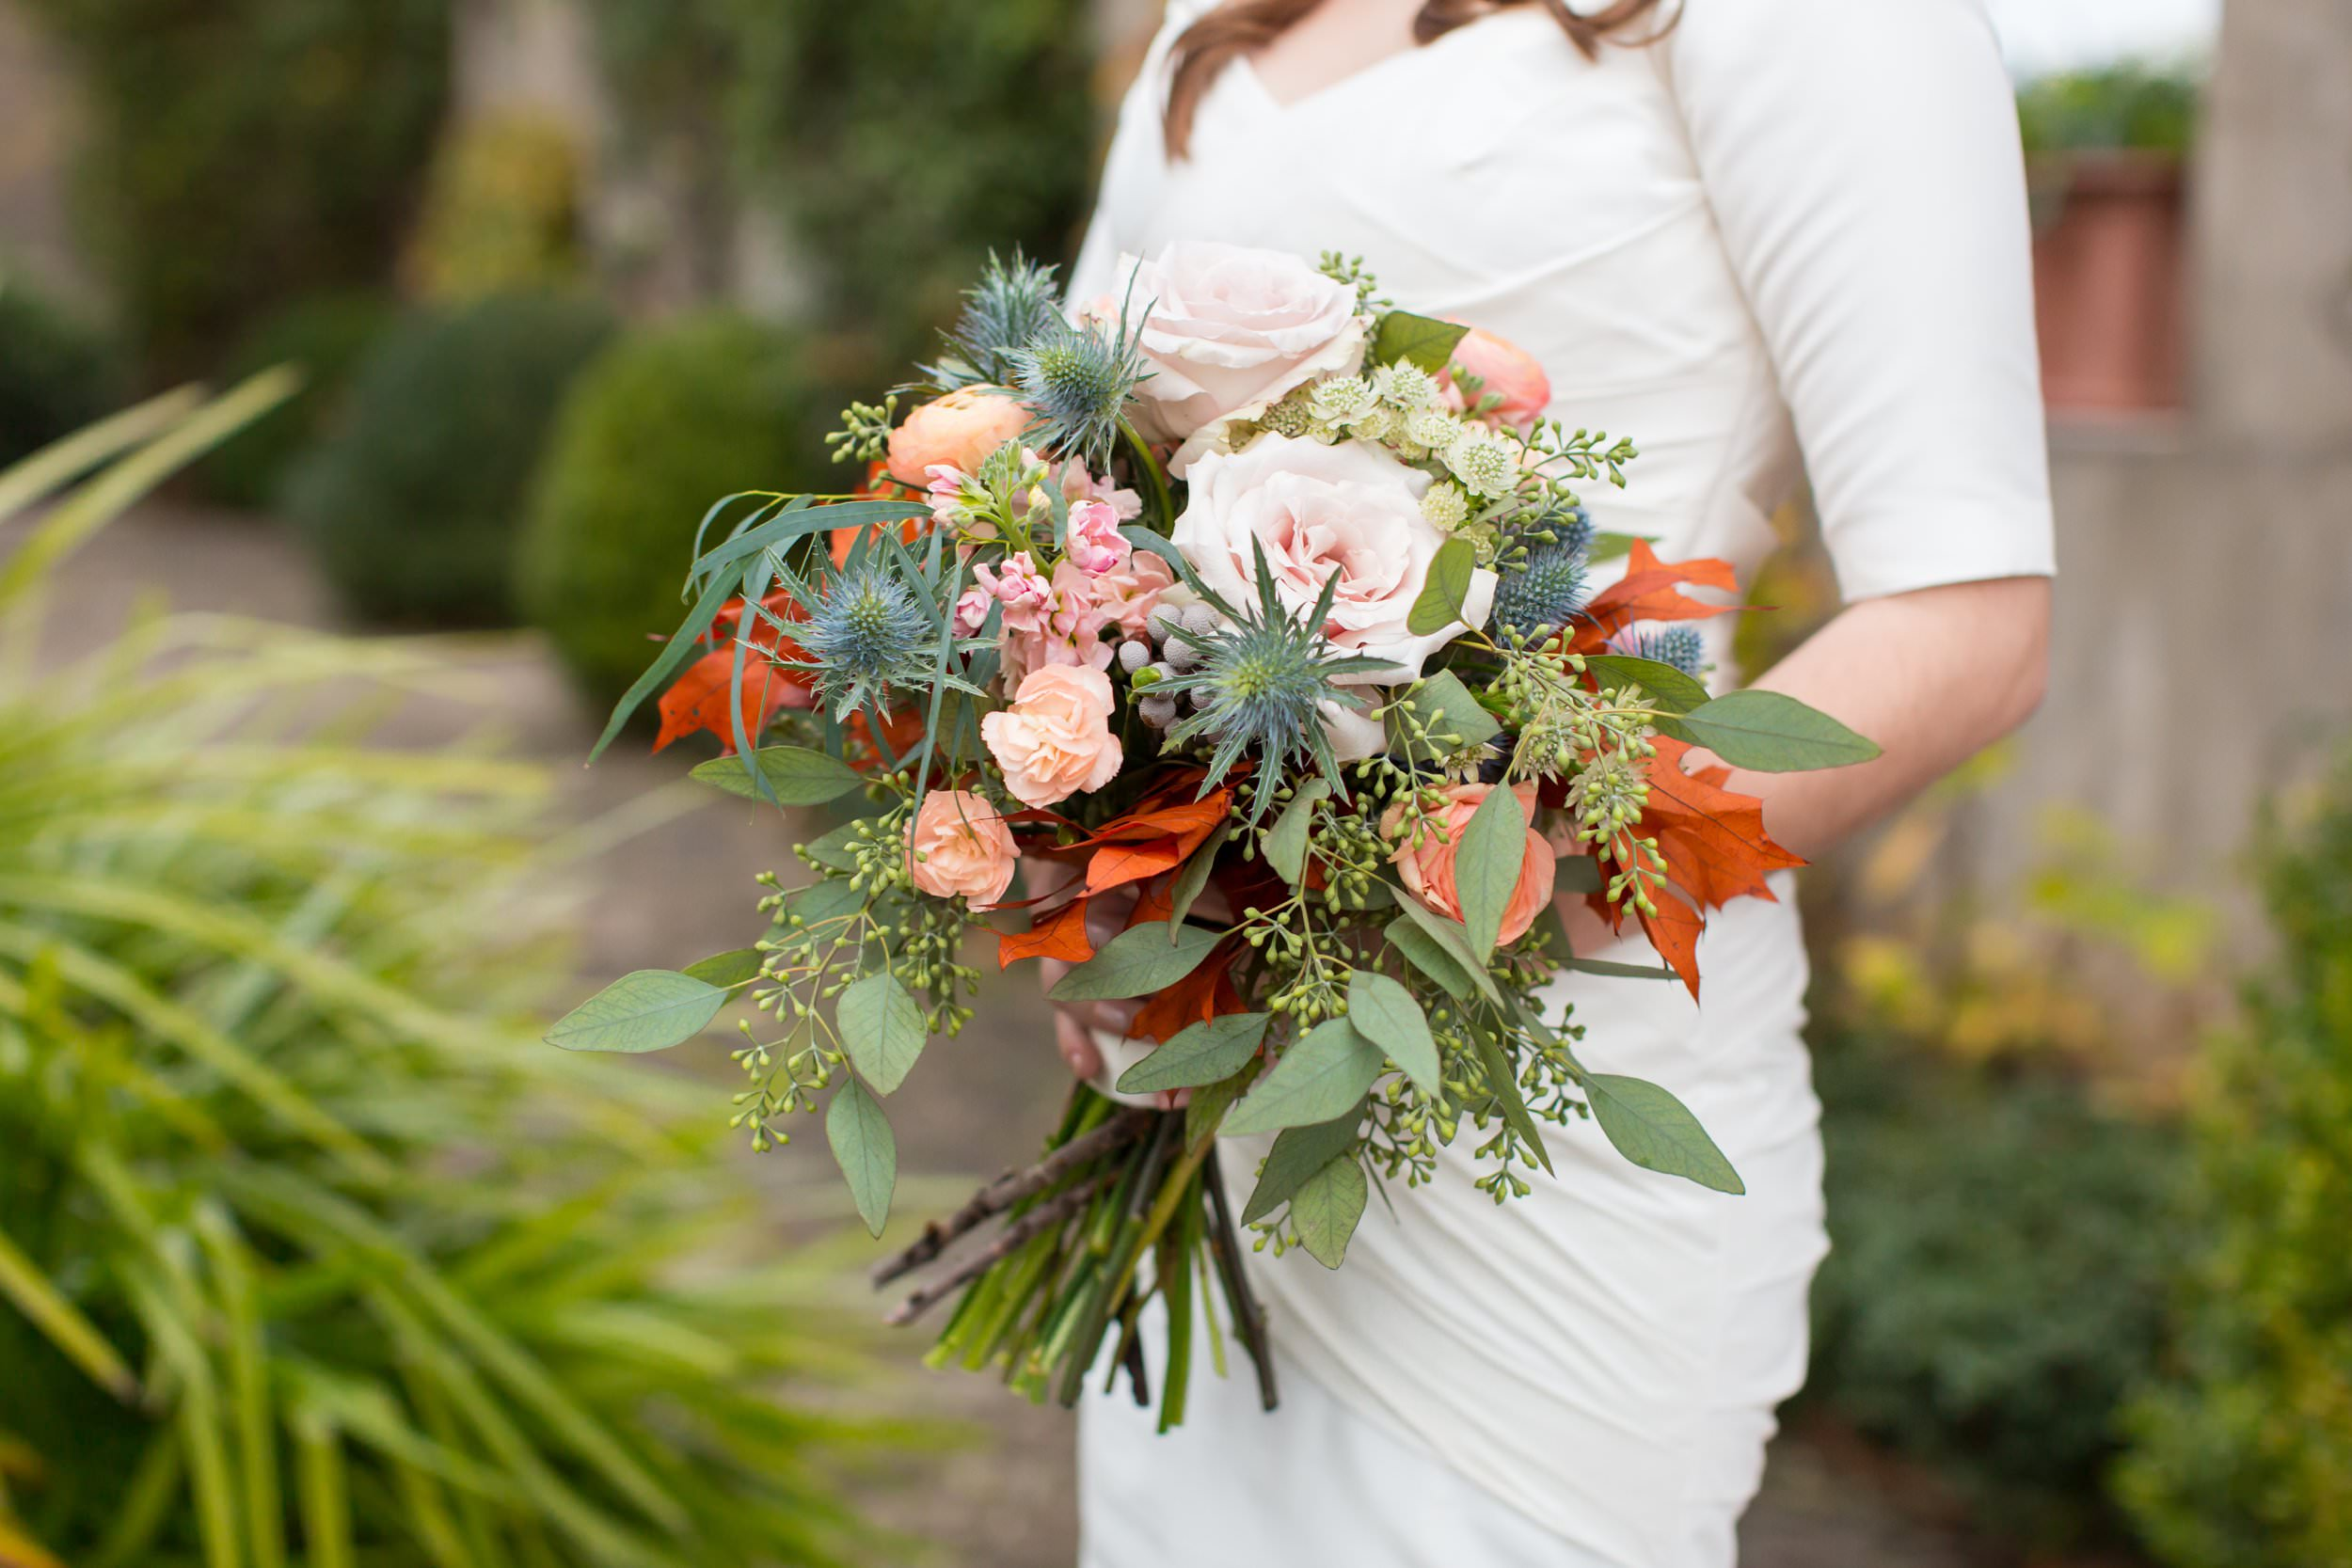 Anytime a bride tells me she's working with  Atlanta wedding florist Faith Flowers , I get so excited! Her work is always beautiful and she captures the spirit of the bride's wedding style.I adore this beautiful fall bouquet that Lina carried for her  fall wedding at Summerour Studio !